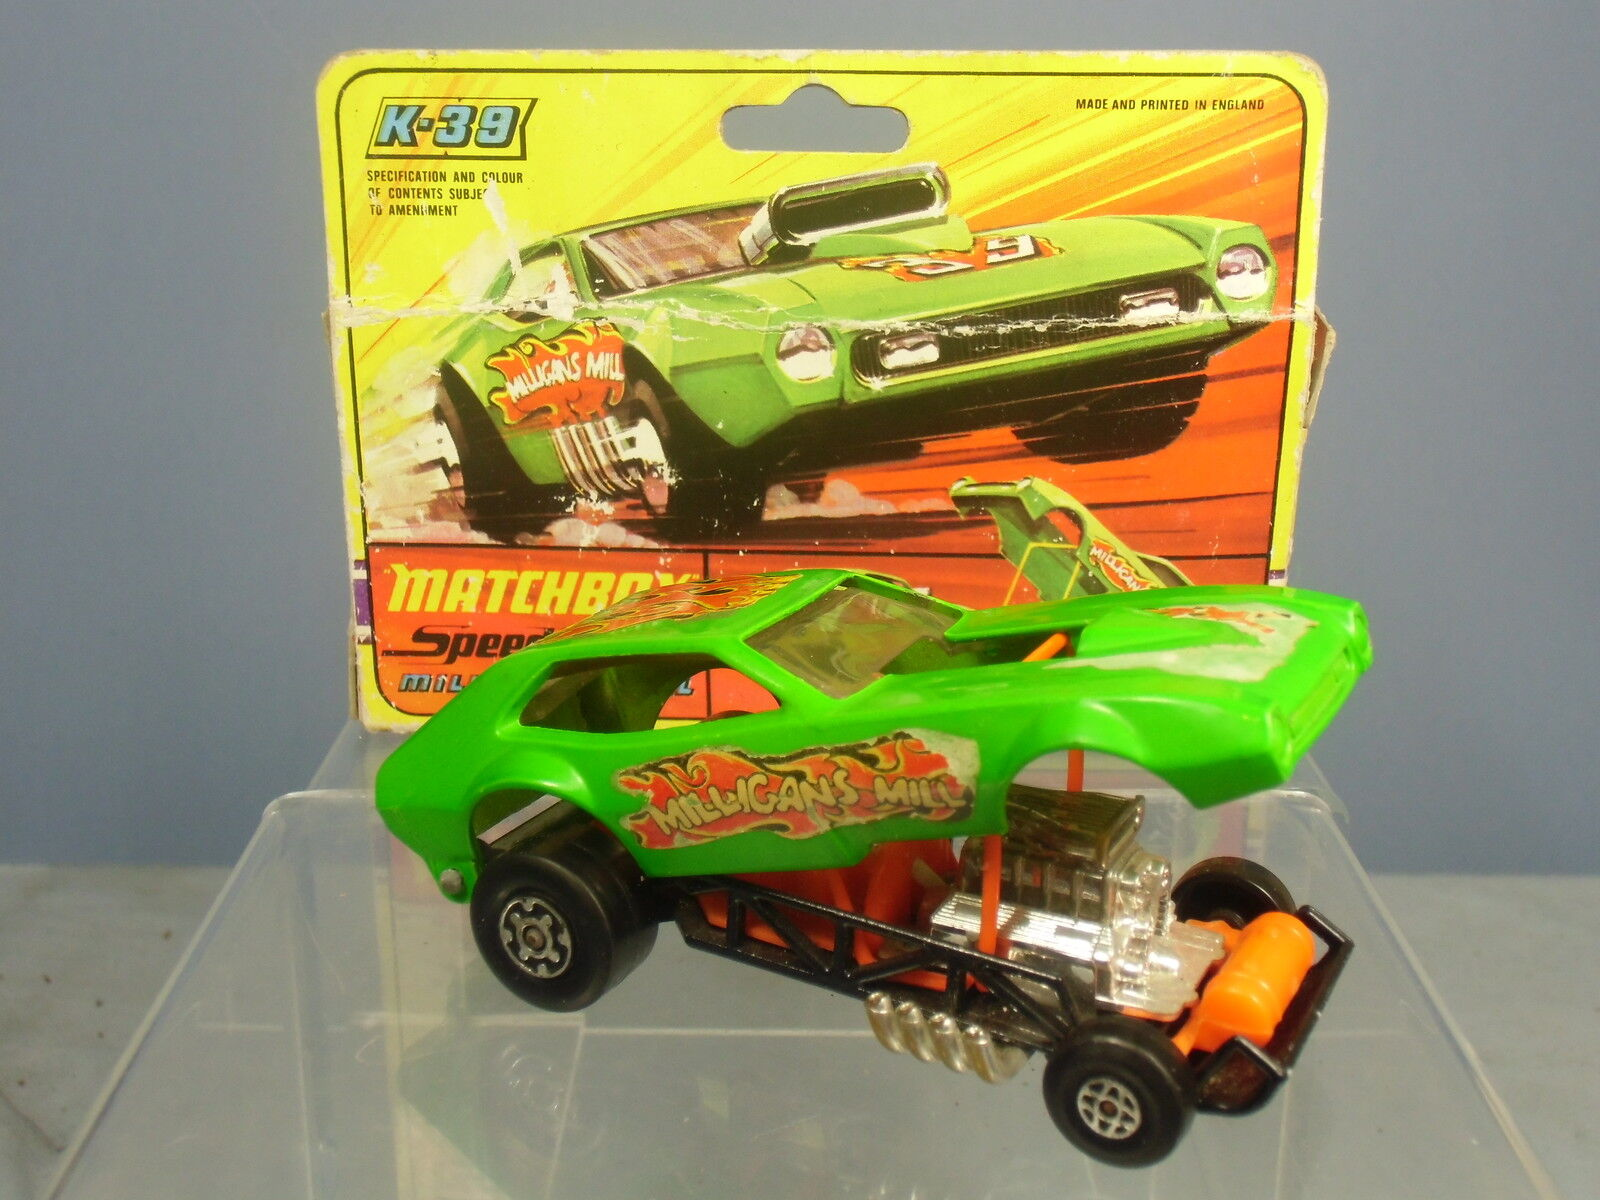 MATCHBOX SPEED KINGS MODEL No.K-39  MILLIGANS MILL  HOT HOT HOT ROD VN MIB 1a6707